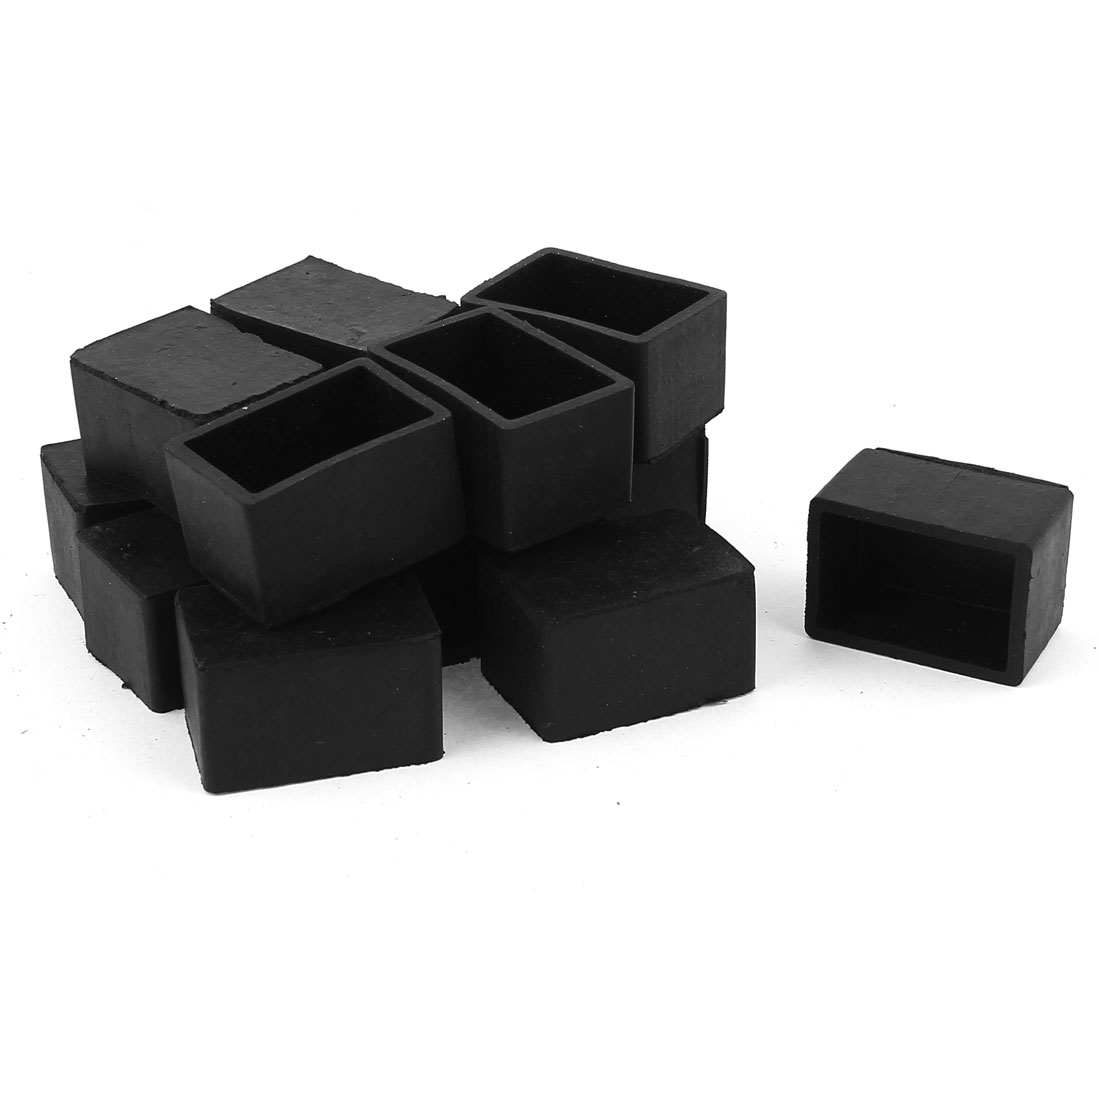 7 Pairs 25mm x 38mm Furniture Table Chair Leg Square Tofu Shape Feet Cover Cap Pads For Abrasion Black